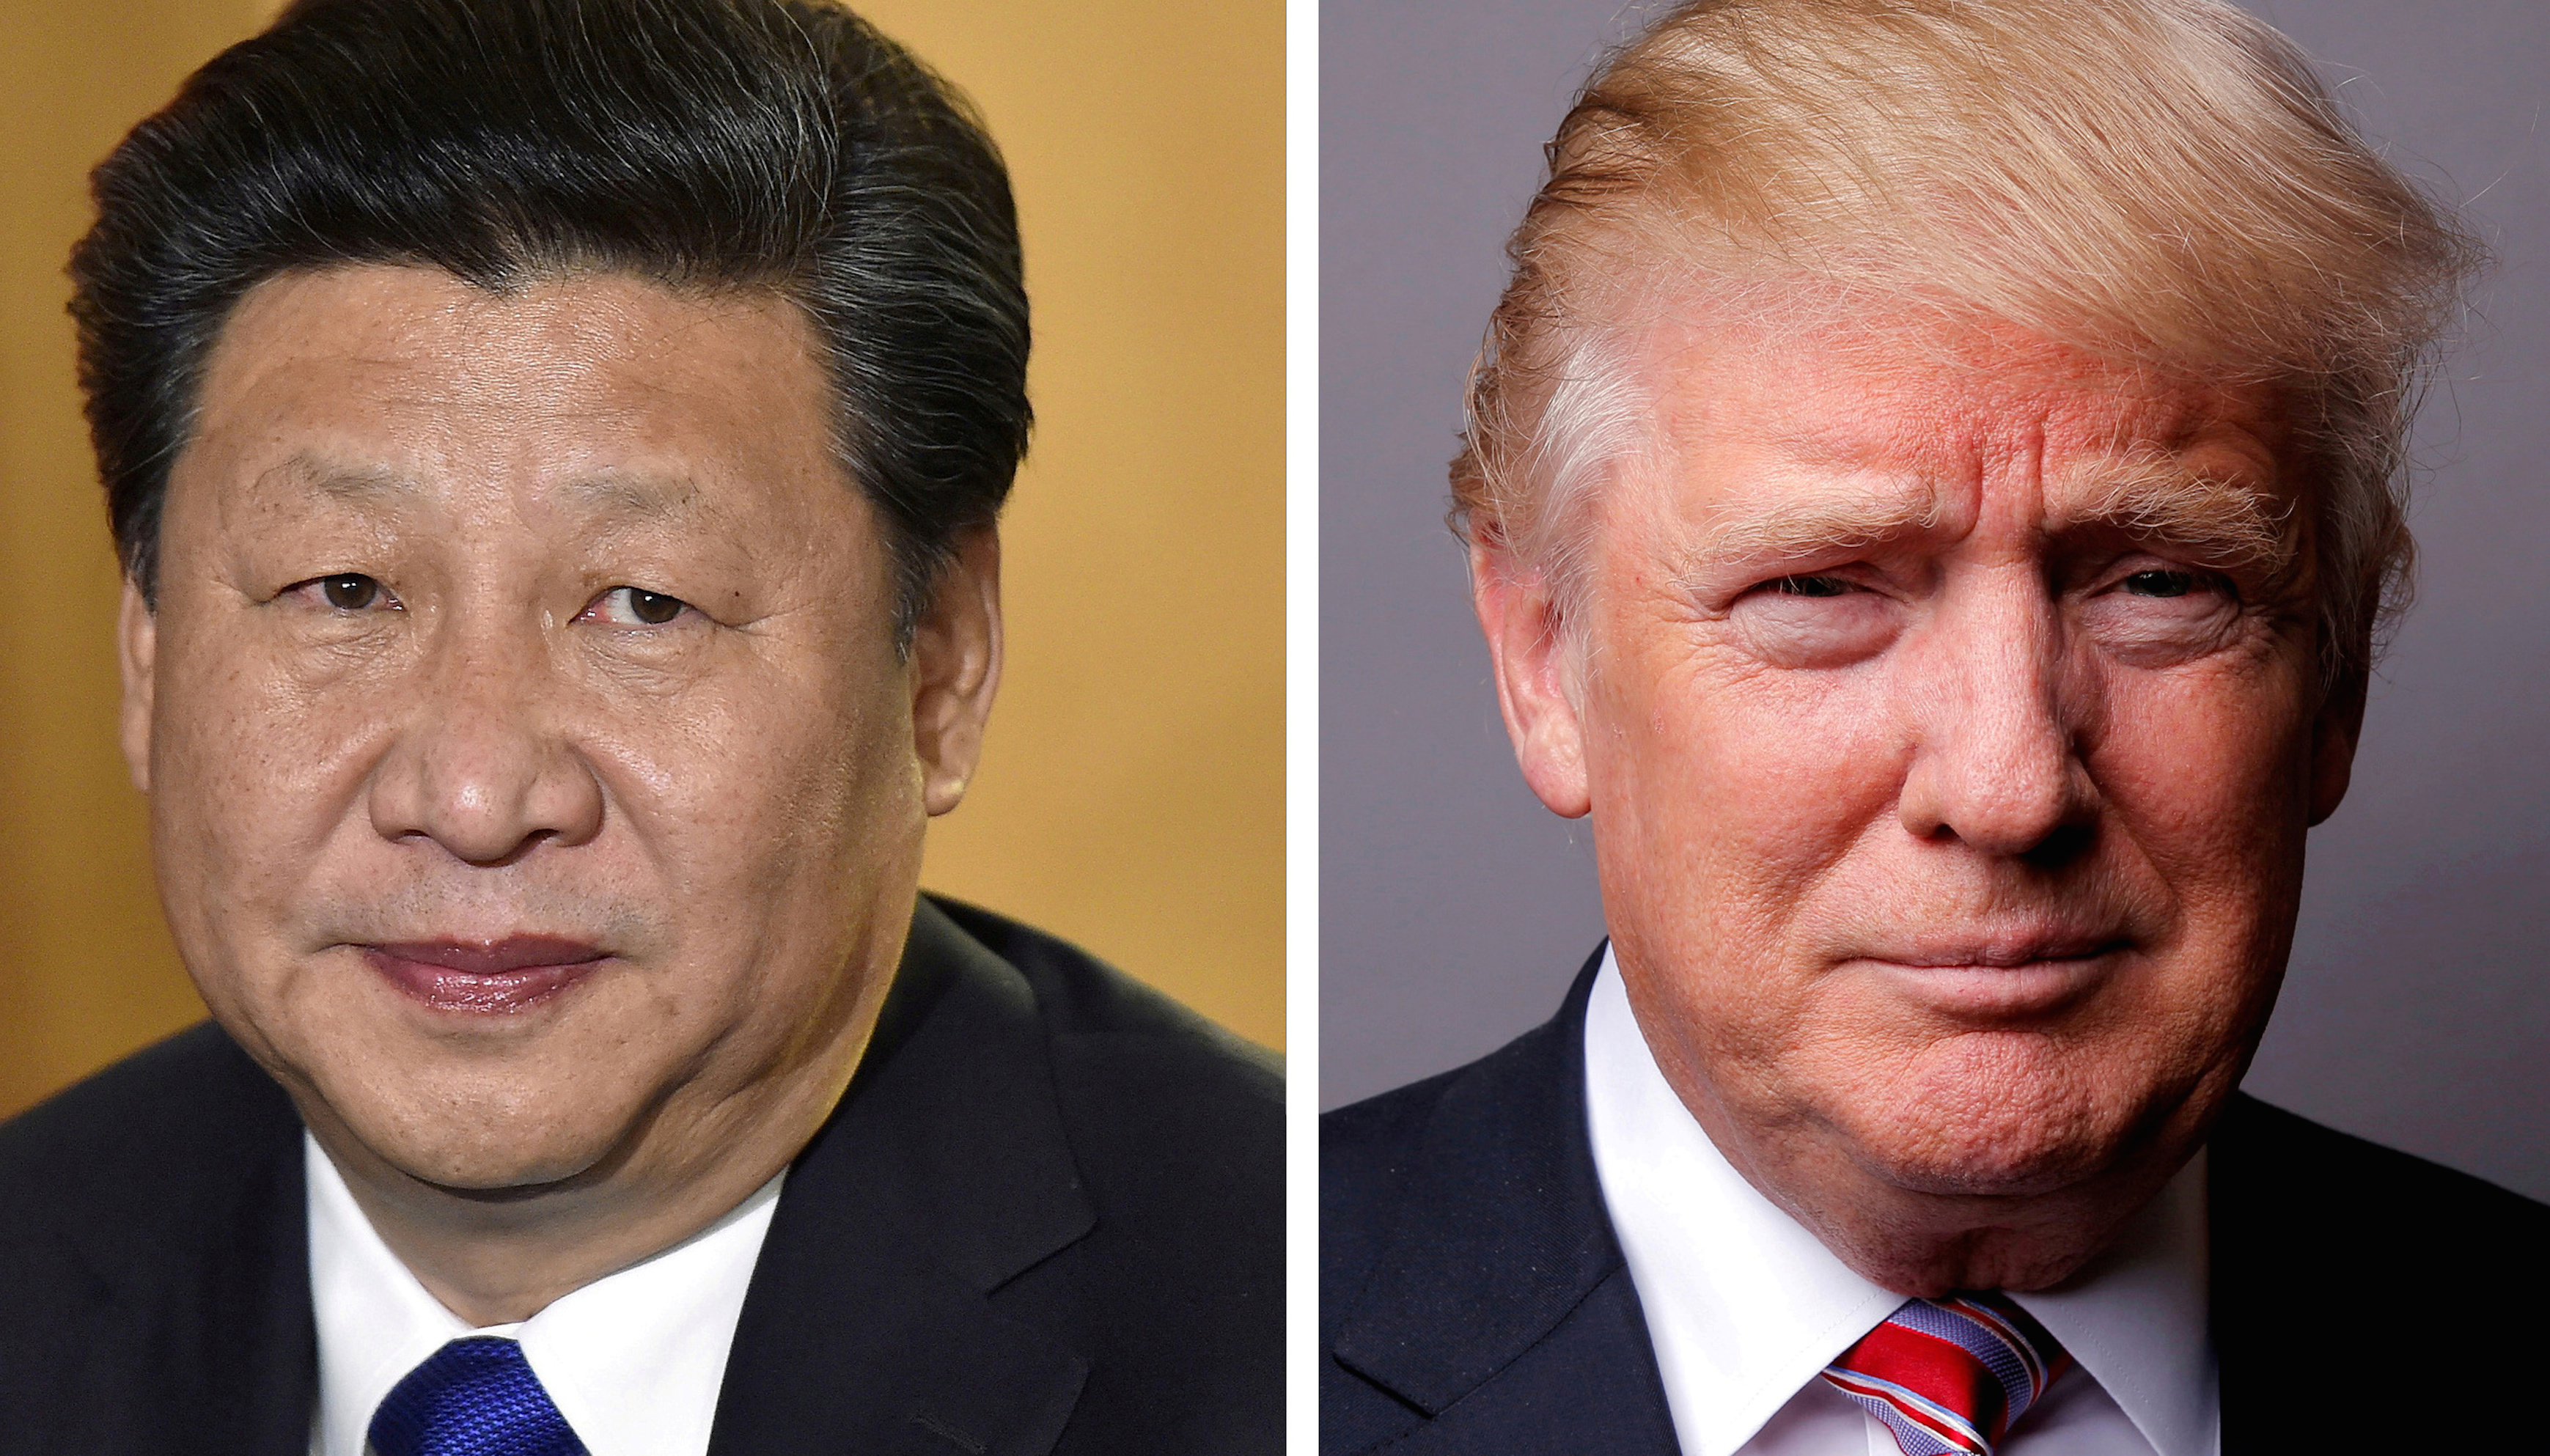 A combination of file photos showing Chinese President Xi Jinping (L) at London's Heathrow Airport, October 19, 2015 and U.S. President Donald Trump posing for a photo in New York City, U.S., May 17, 2016.